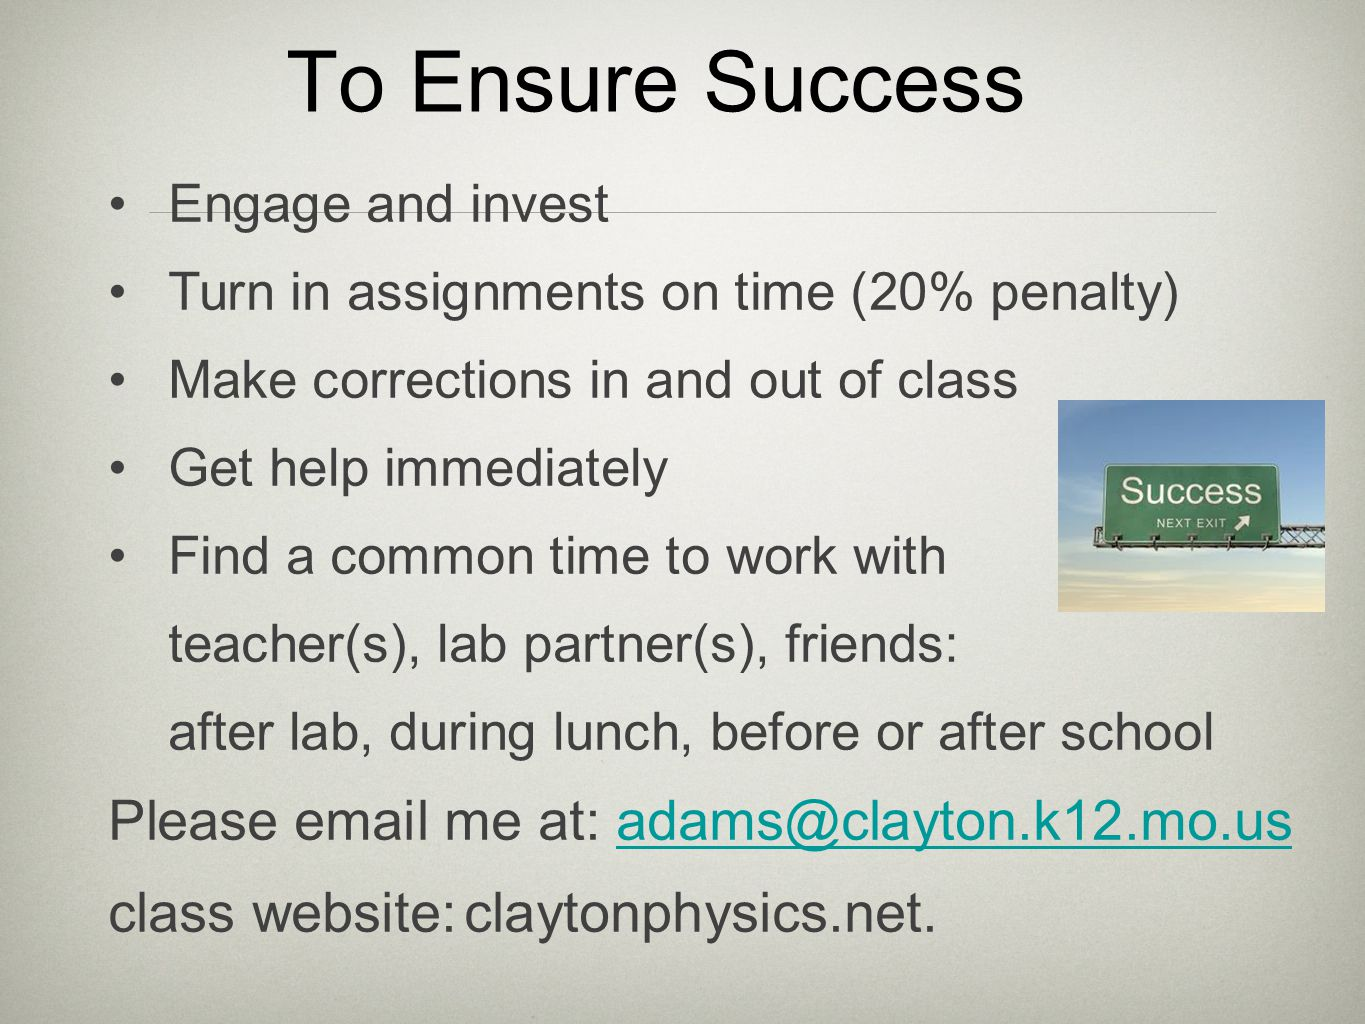 To Ensure Success Engage and invest Turn in assignments on time (20% penalty) Make corrections in and out of class Get help immediately Find a common time to work with teacher(s), lab partner(s), friends: after lab, during lunch, before or after school Please email me at: adams@clayton.k12.mo.usadams@clayton.k12.mo.us class website:claytonphysics.net.